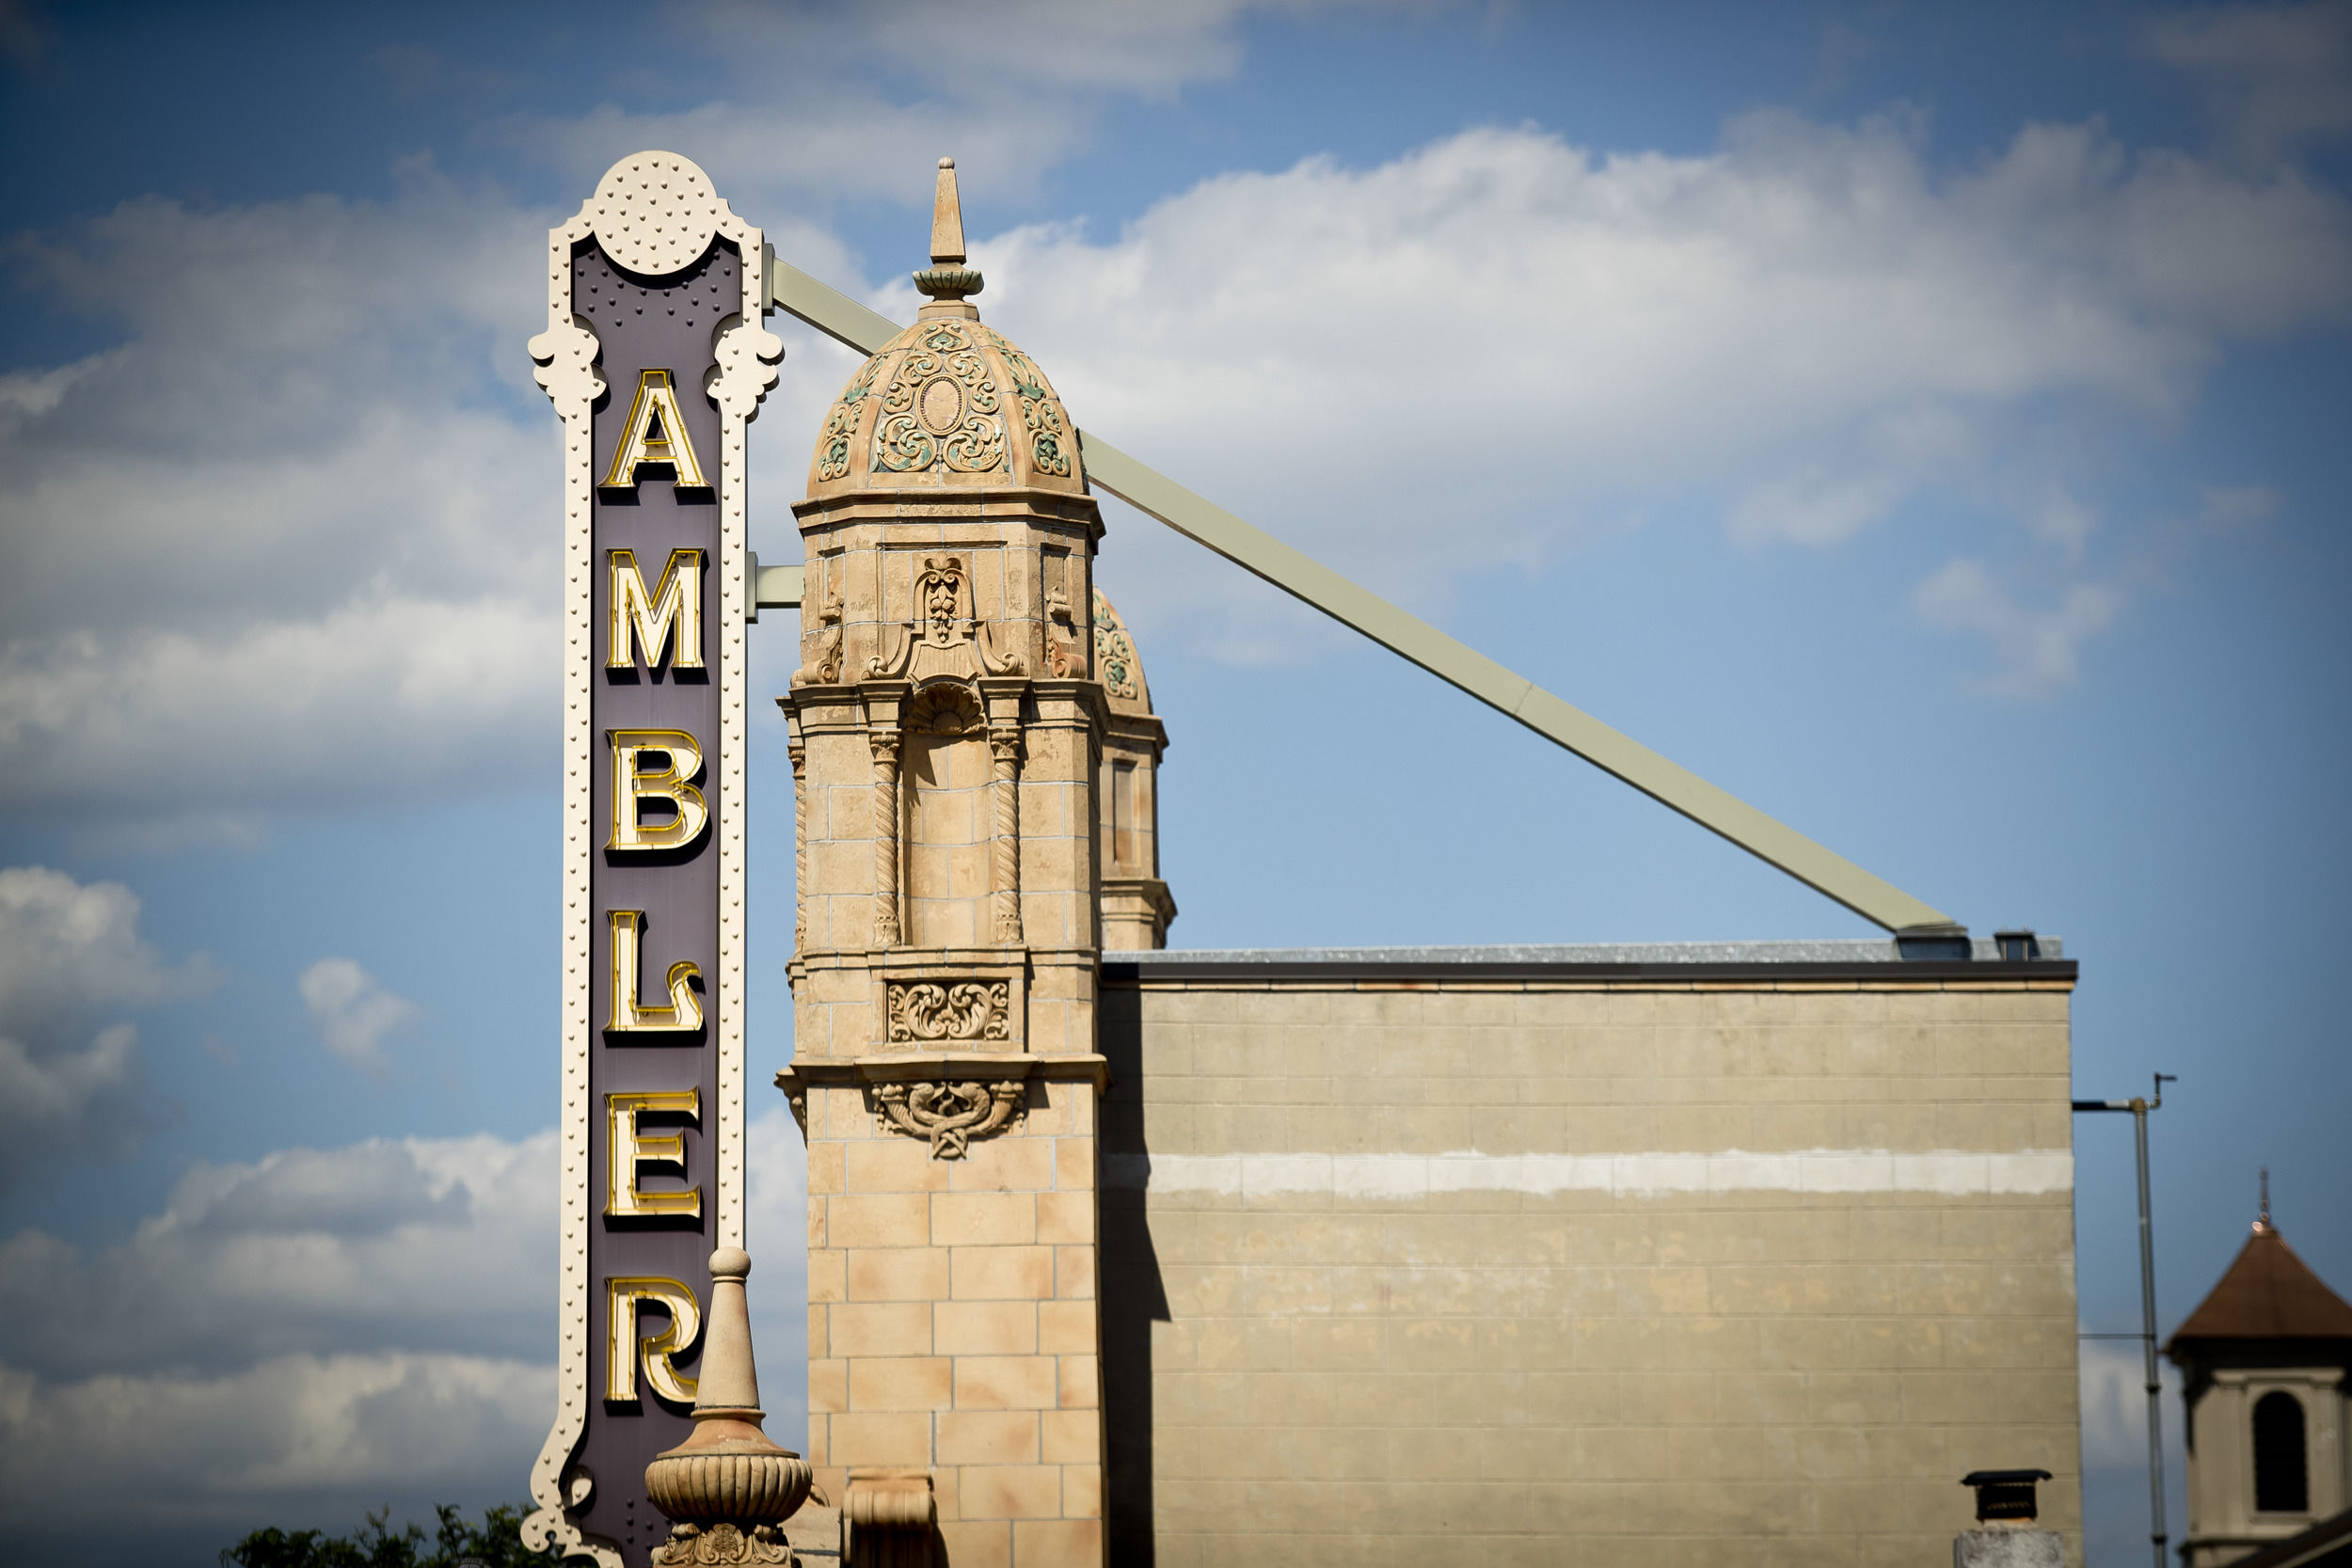 An image of the city of Ambler.